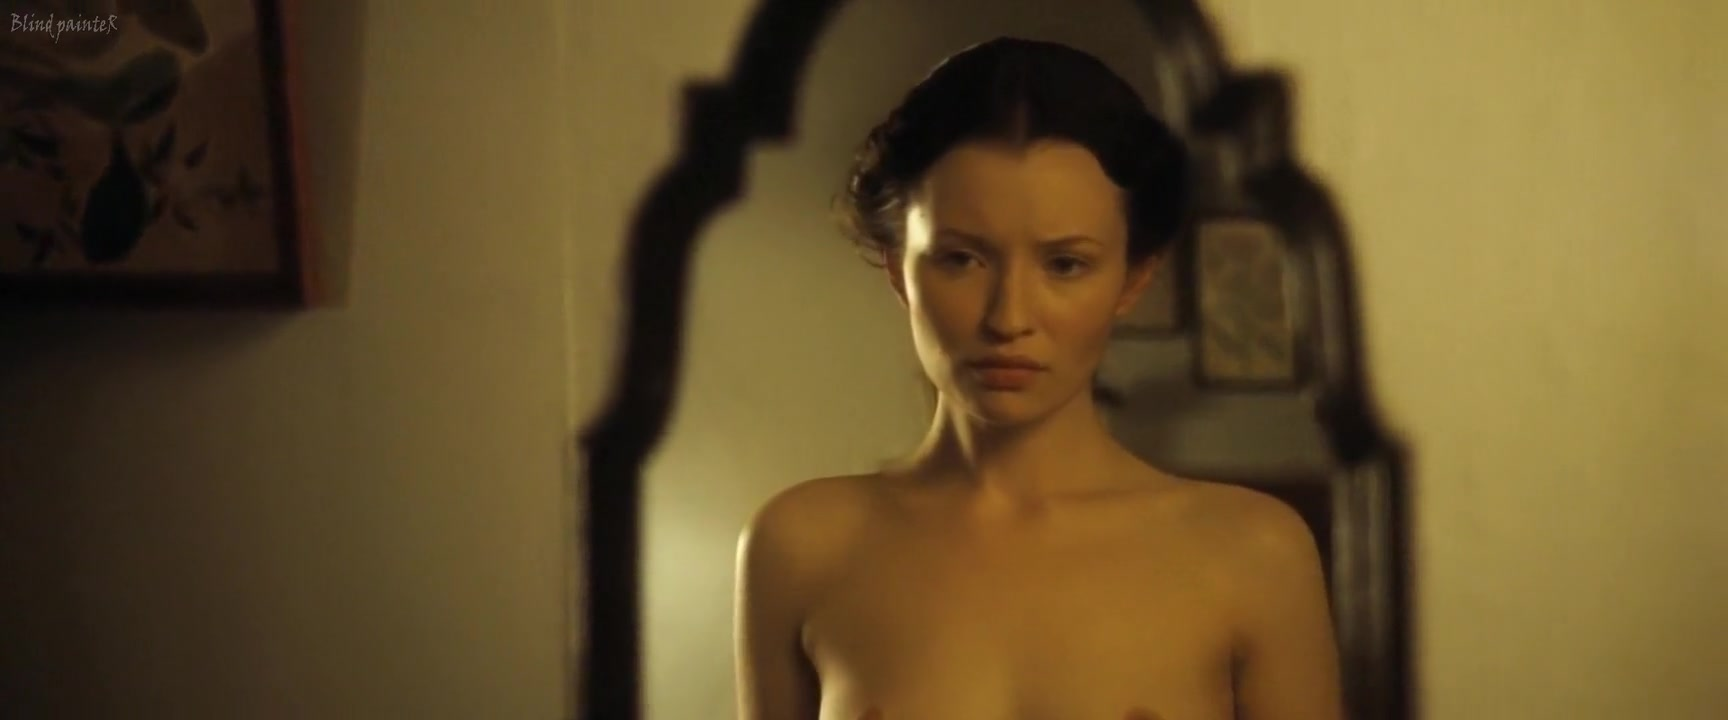 Emily Browning, Mia Austen - 'Summer in February' (2013)